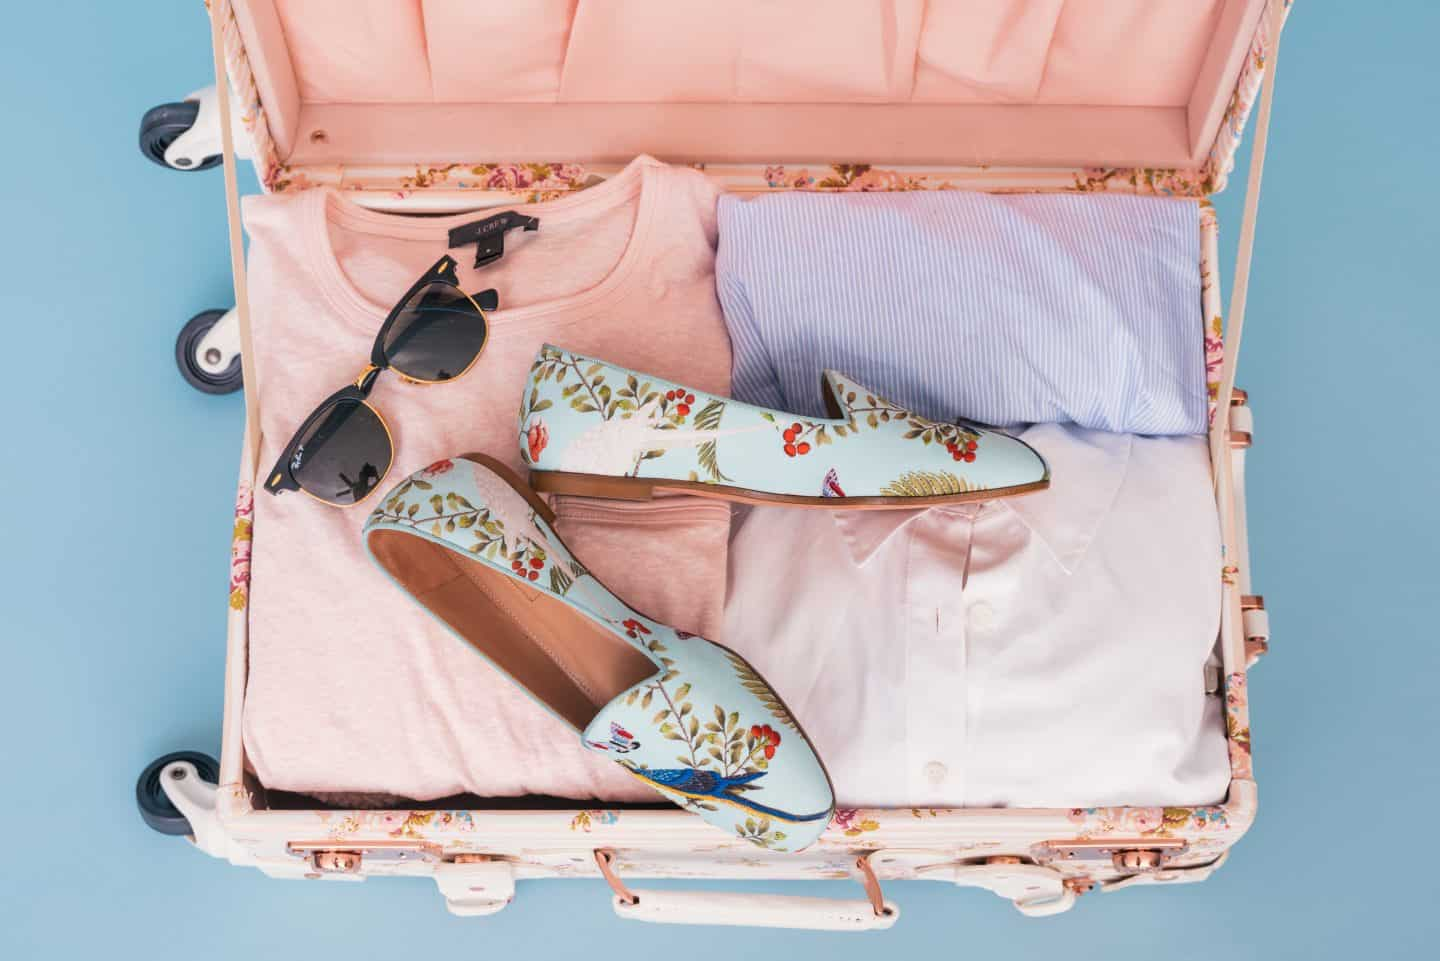 Packing for traveling abroad the first time